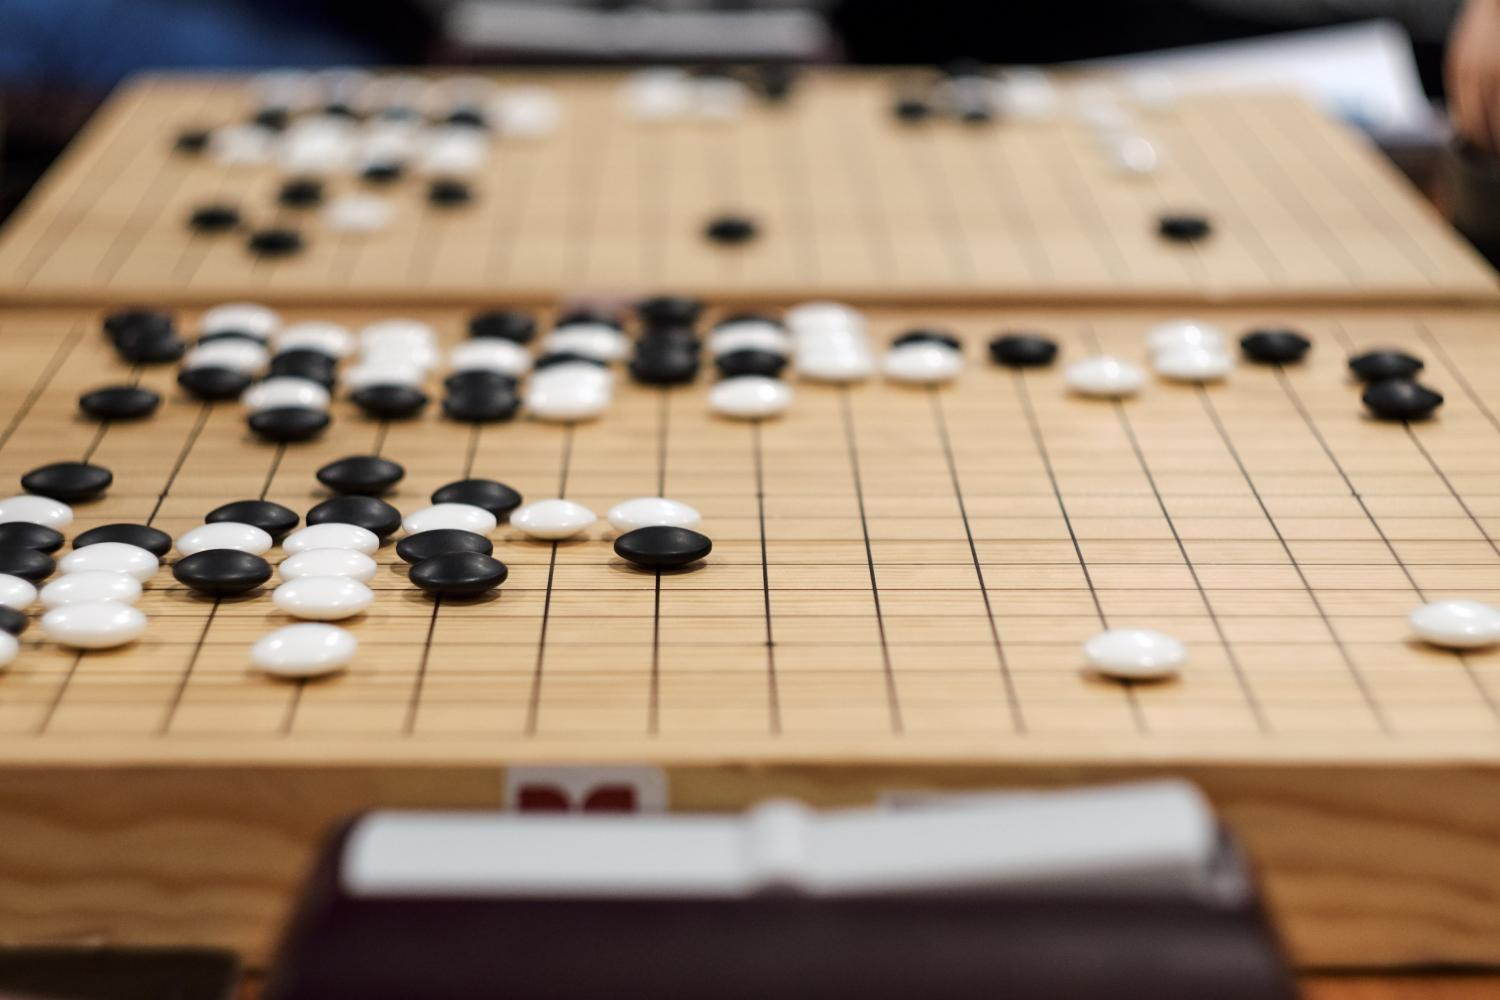 Seki - Life Without Eyes in the Game of Go